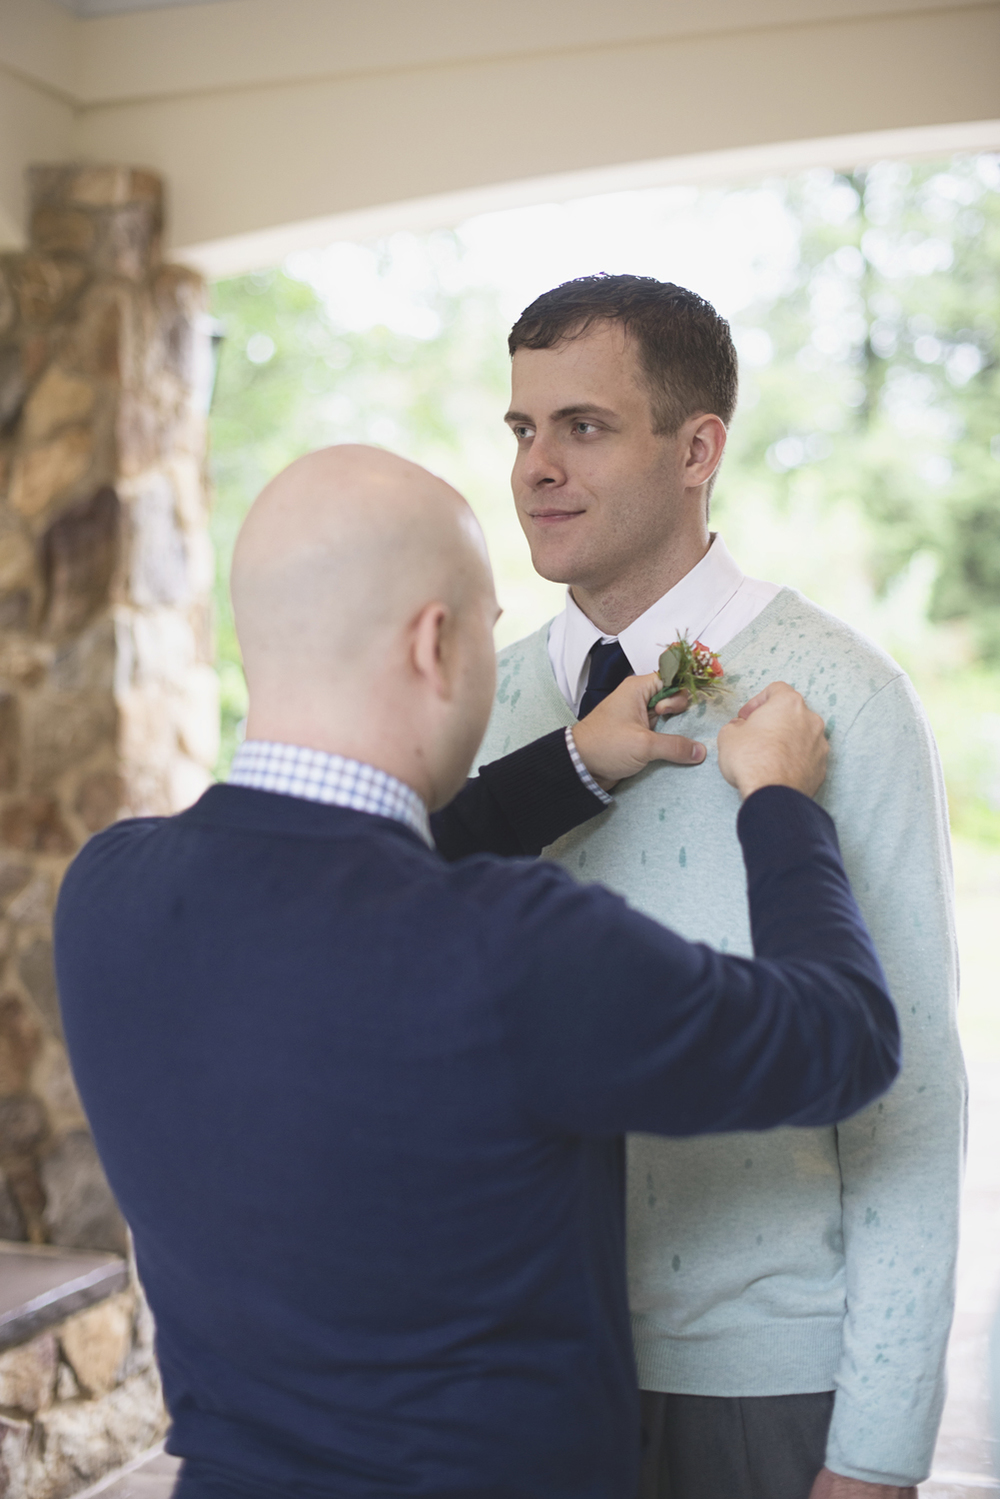 Lewis Ginter Botanic Garden Wedding | Richmond, Virginia, Wedding | Groomsmen getting ready